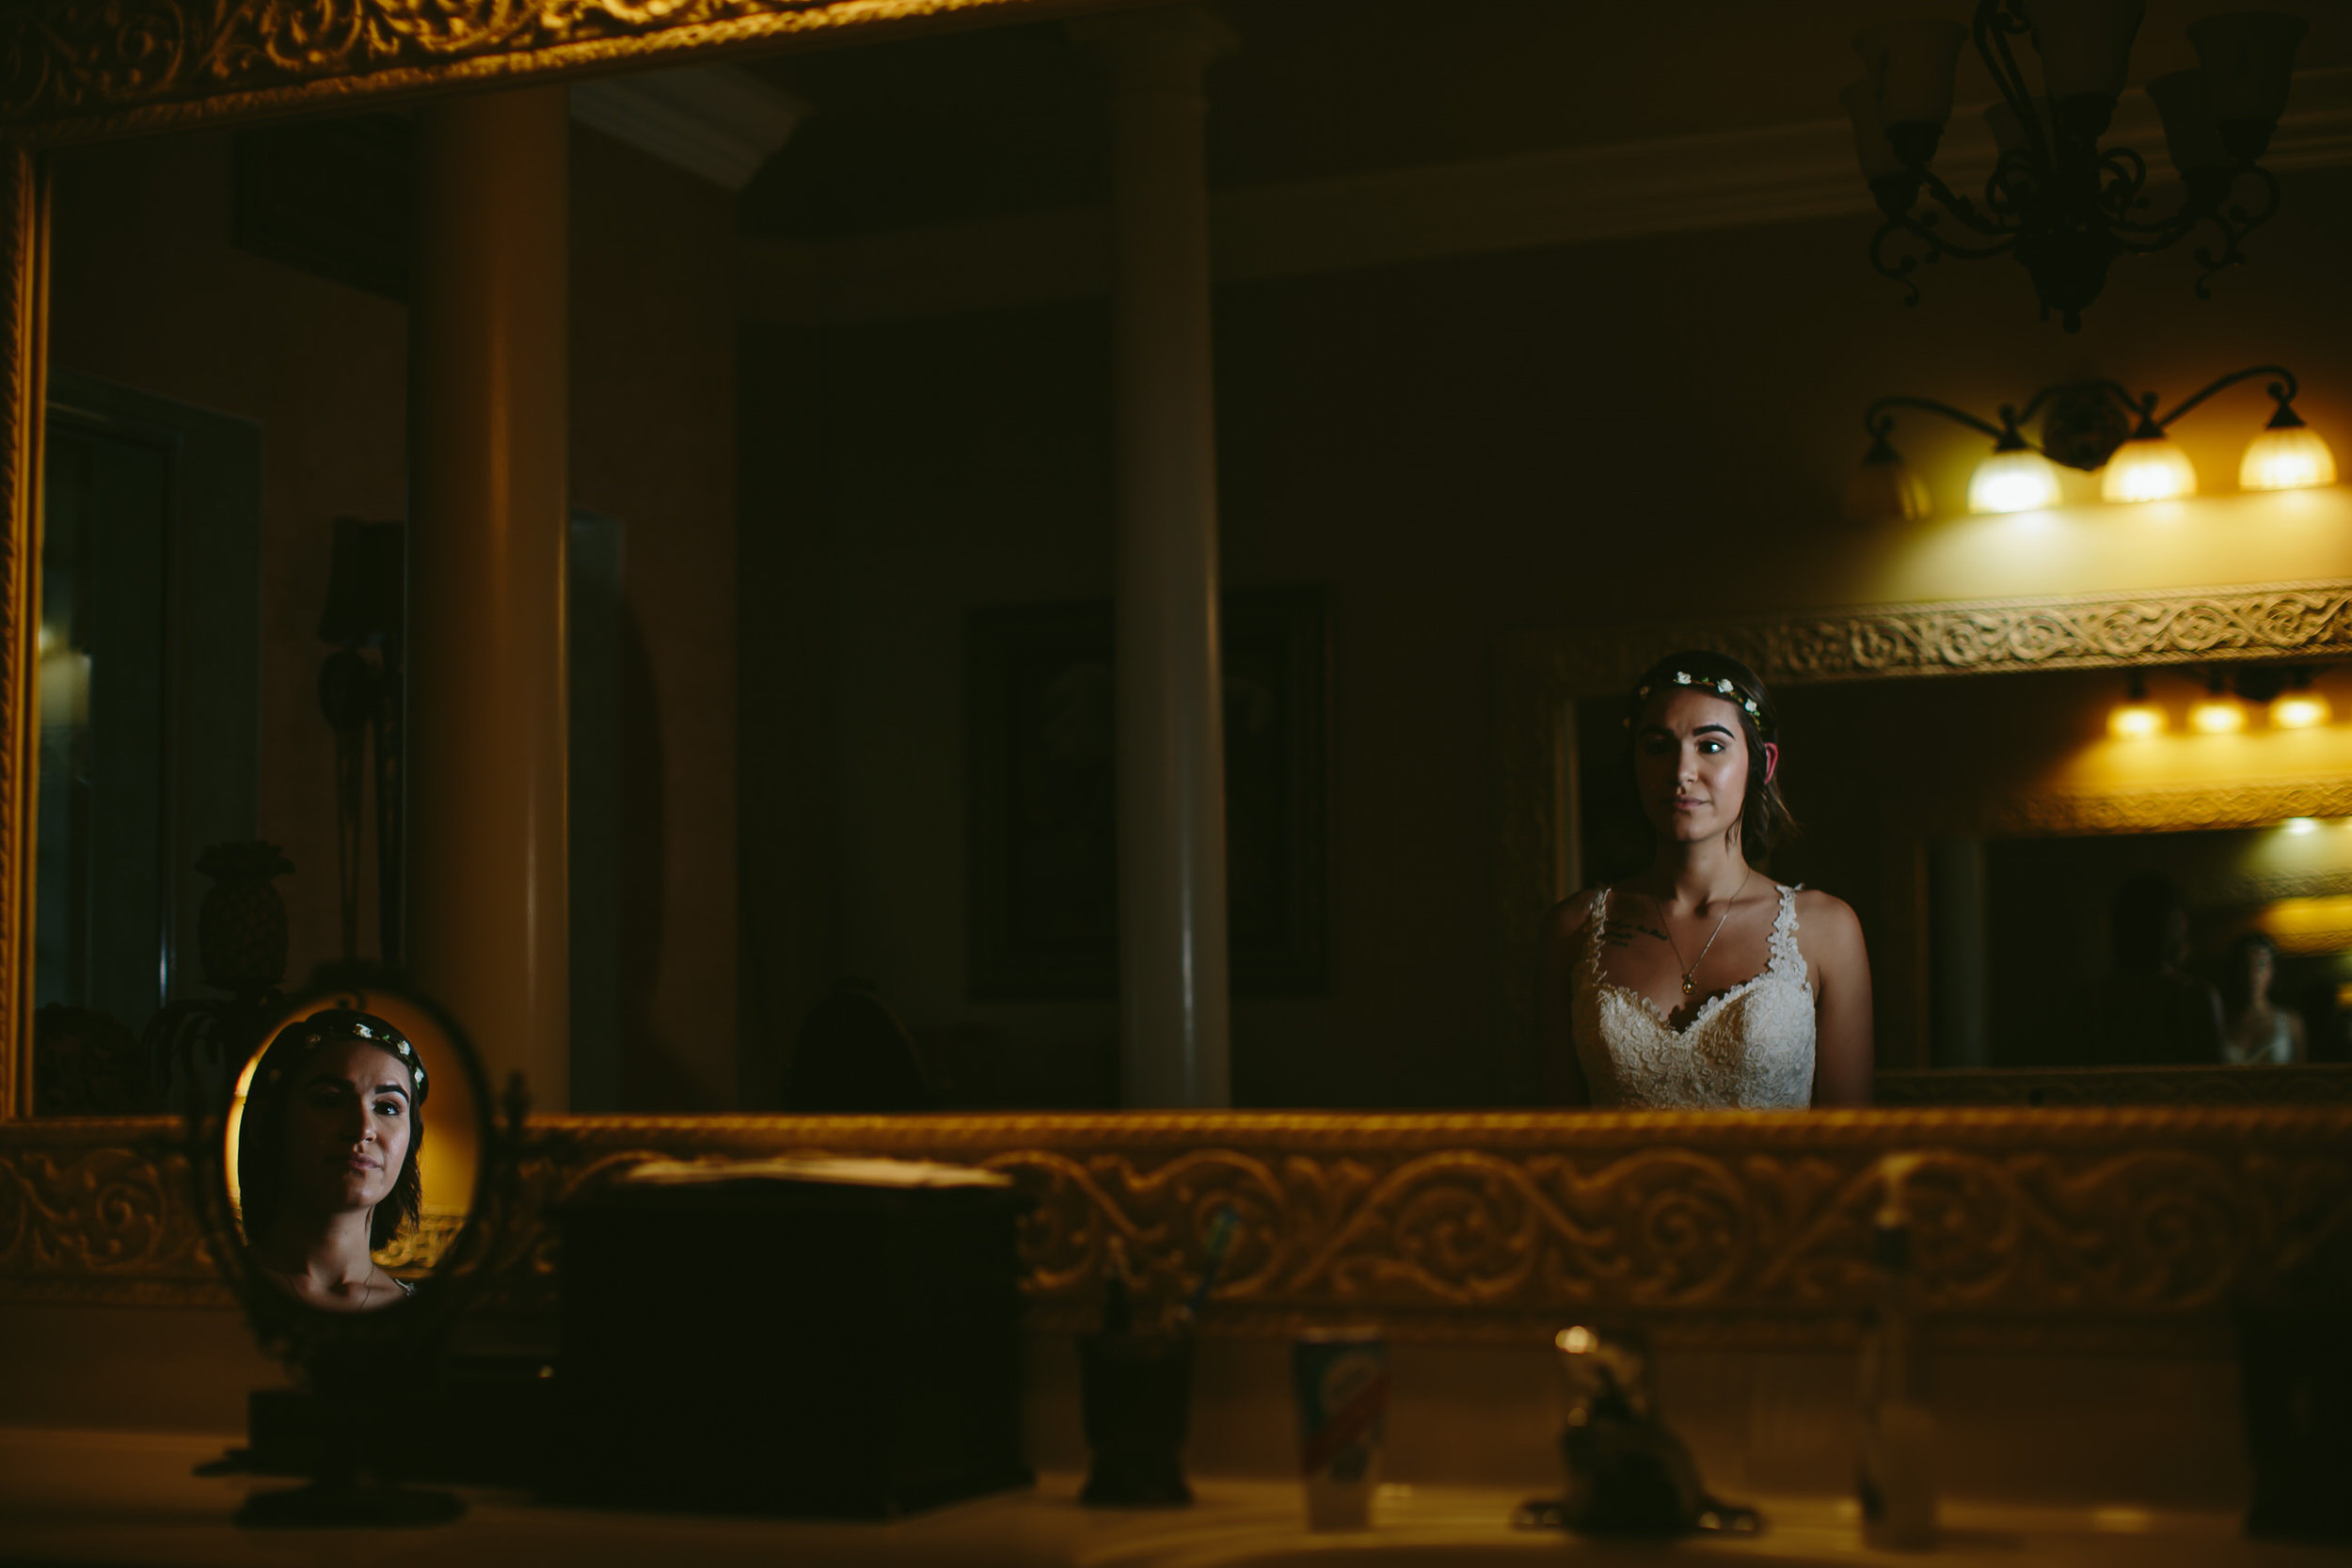 bride_portrait_getting_ready_beautiful_timeless_mirrors_tiny_house_hoto.jpg